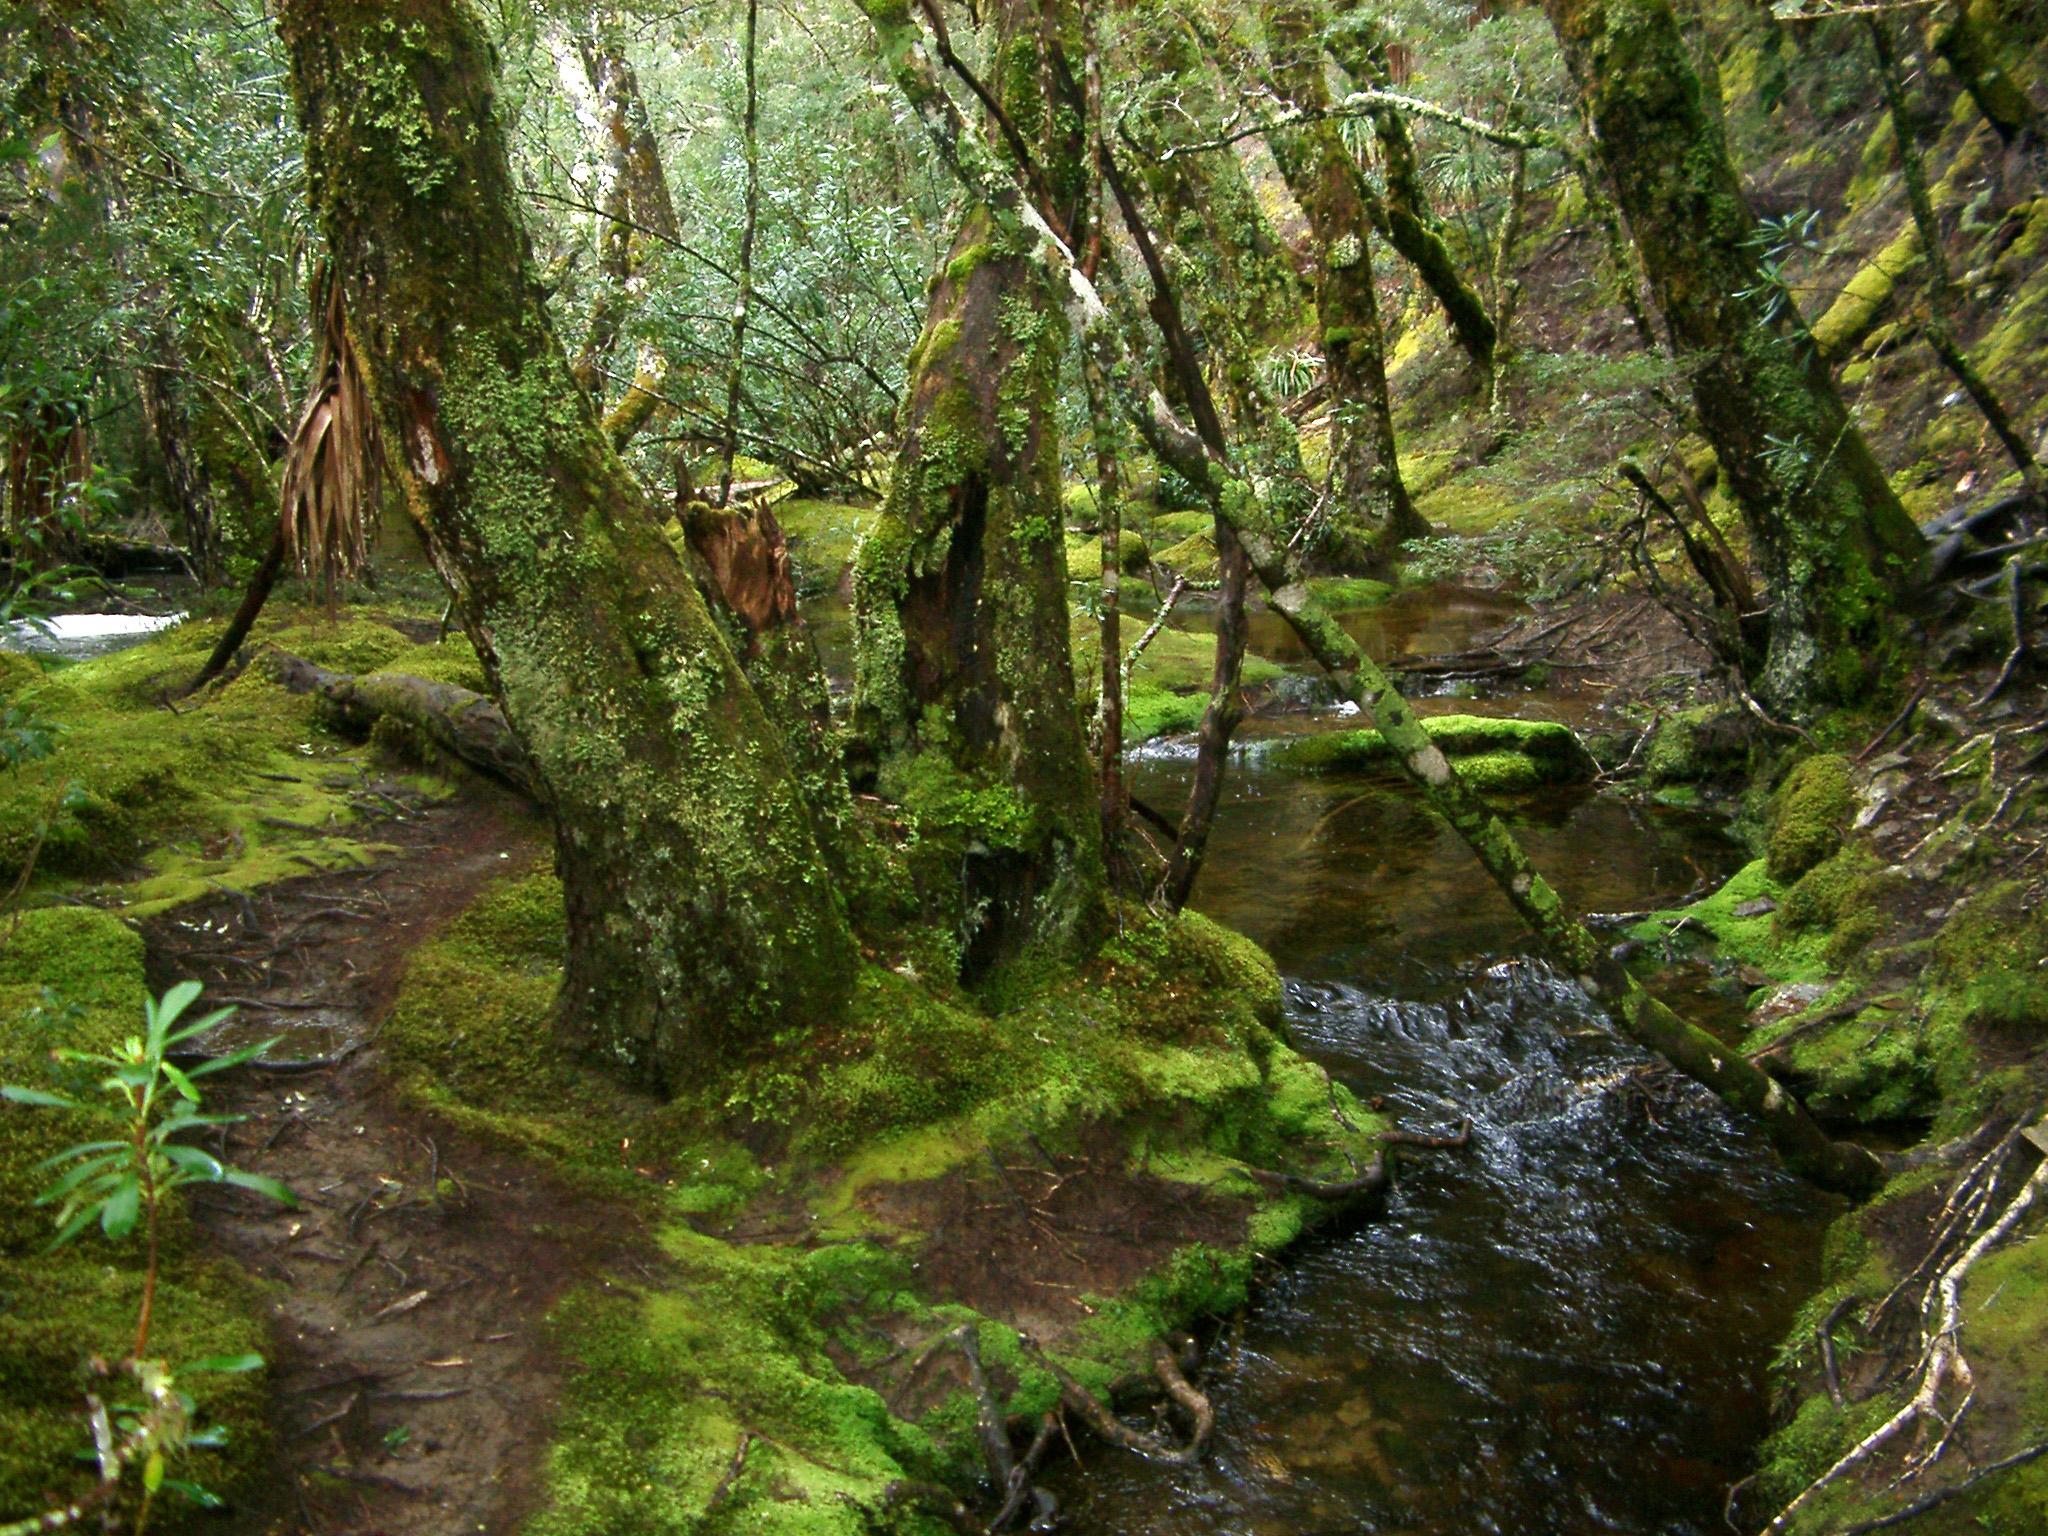 American Wallpaper Fall River Free Stock Photo Of Woodland Glade With A Mossy River